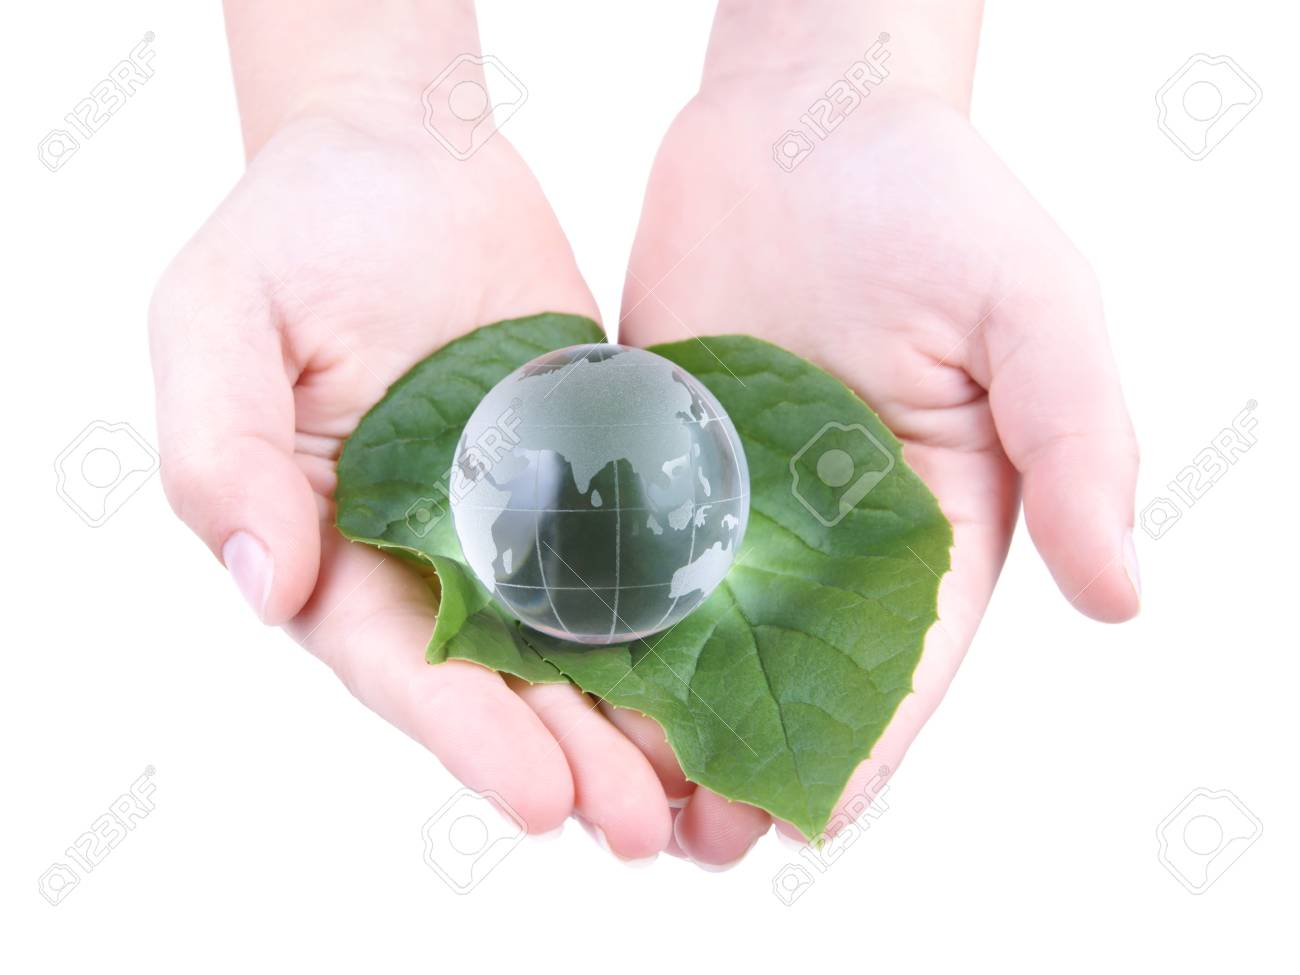 Glass Globe in the leaves and the child s hands, isolated on white background Stock Photo - 23365163